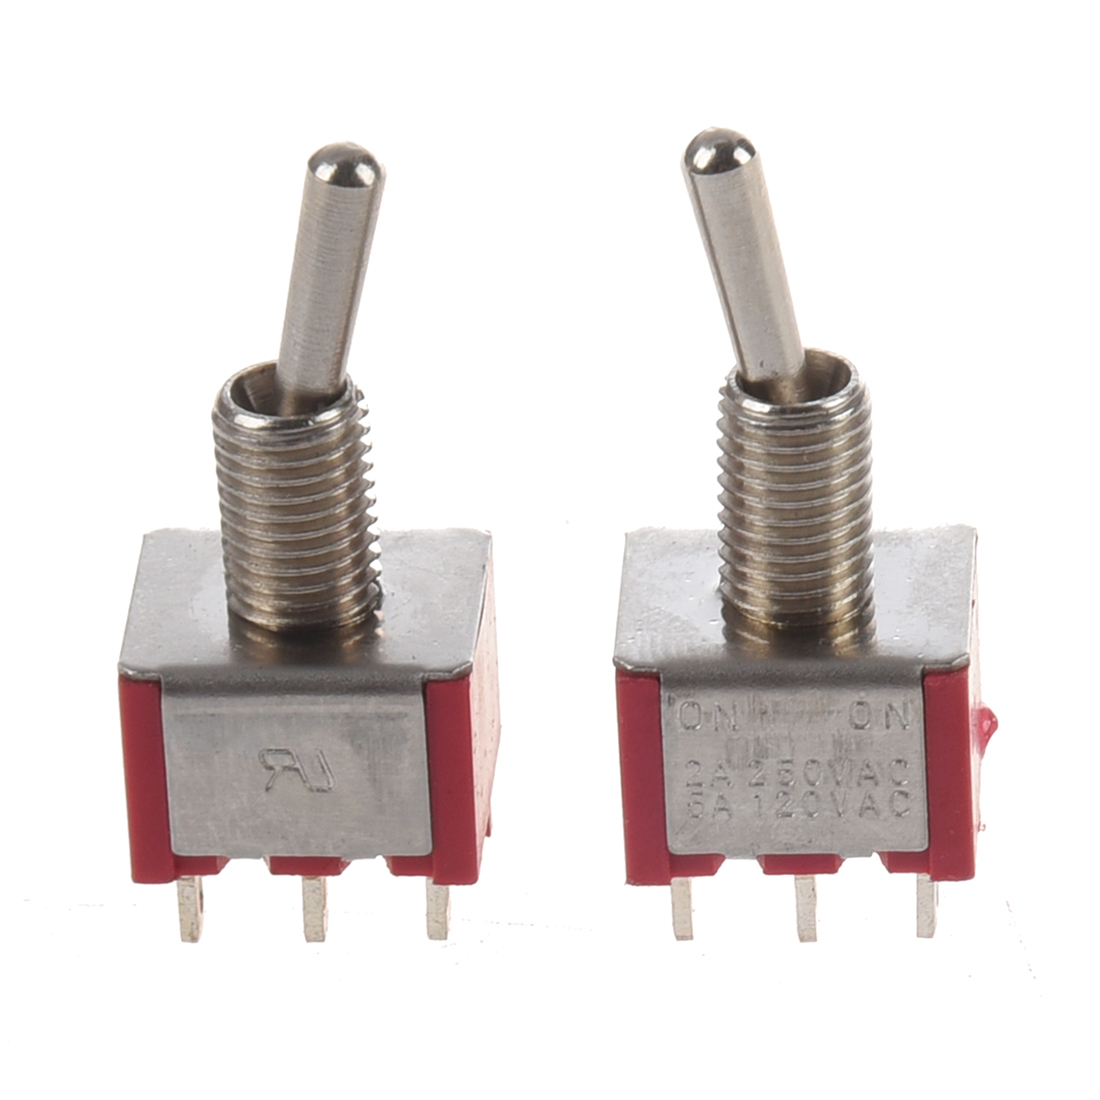 SODIAL(R) 2 Pcs ON/ON 2 Position Double Pole Double Throw Toggle Switch